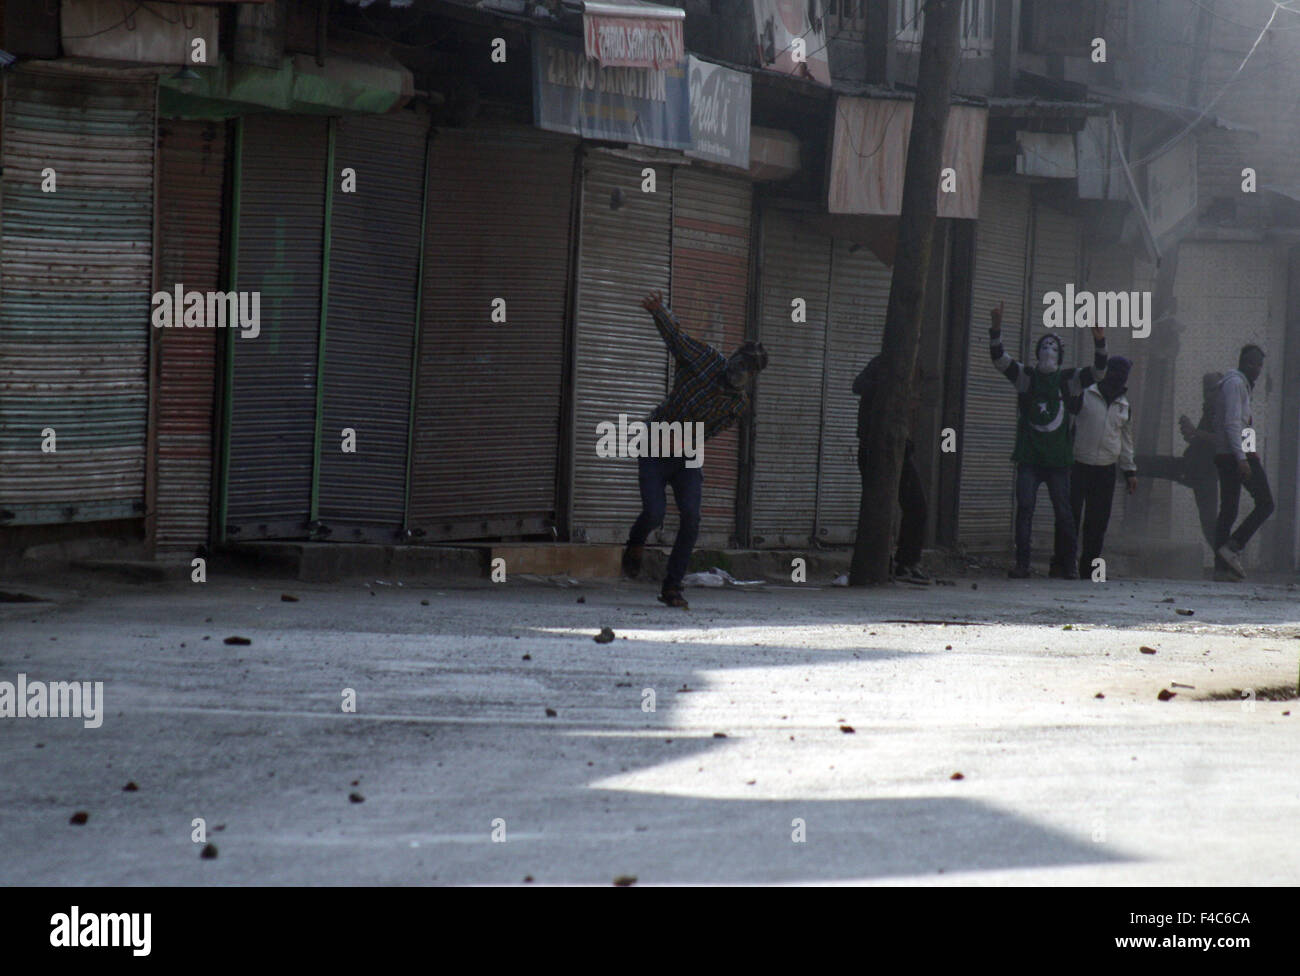 Srinagar, Indian Administered Kashmir:16 October. kashmiri Muslim protestors throw stones (unseen) during clashes - Stock Image